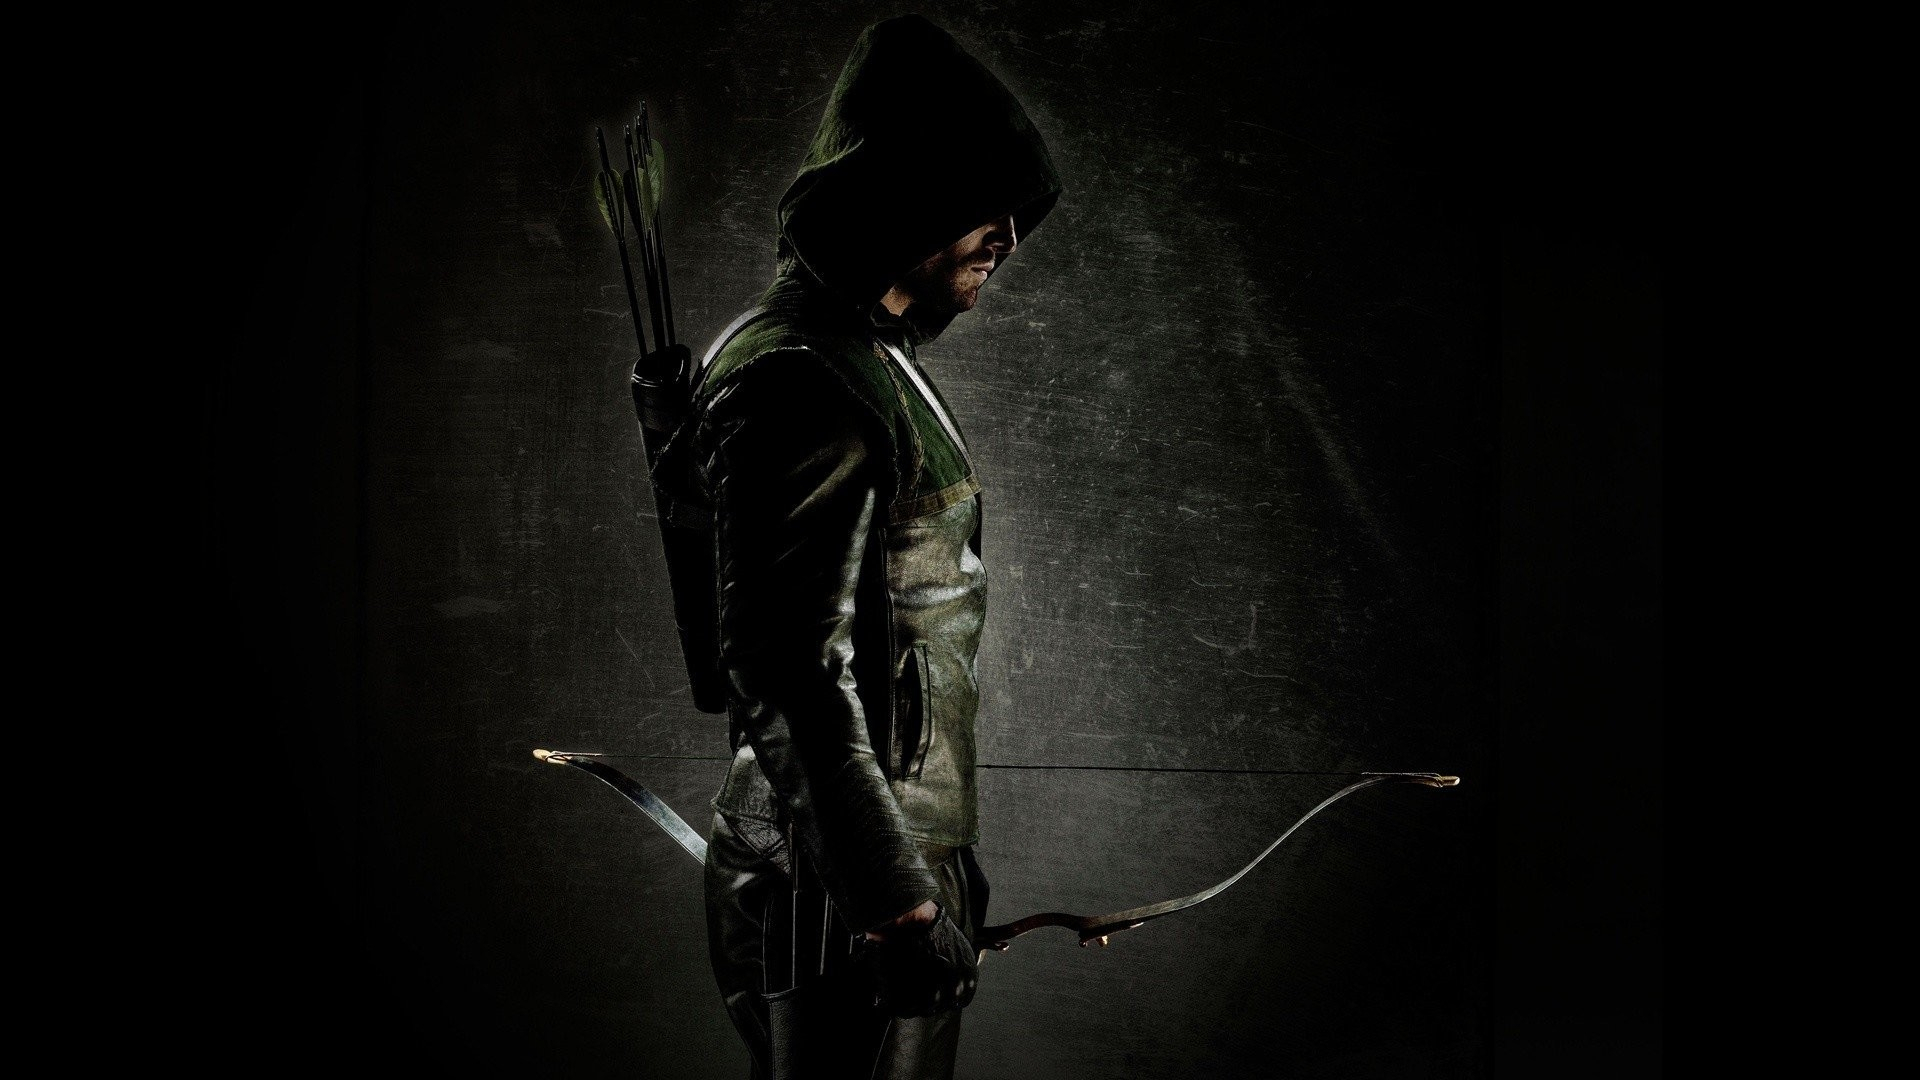 79+ arrow hd wallpapers on wallpaperplay